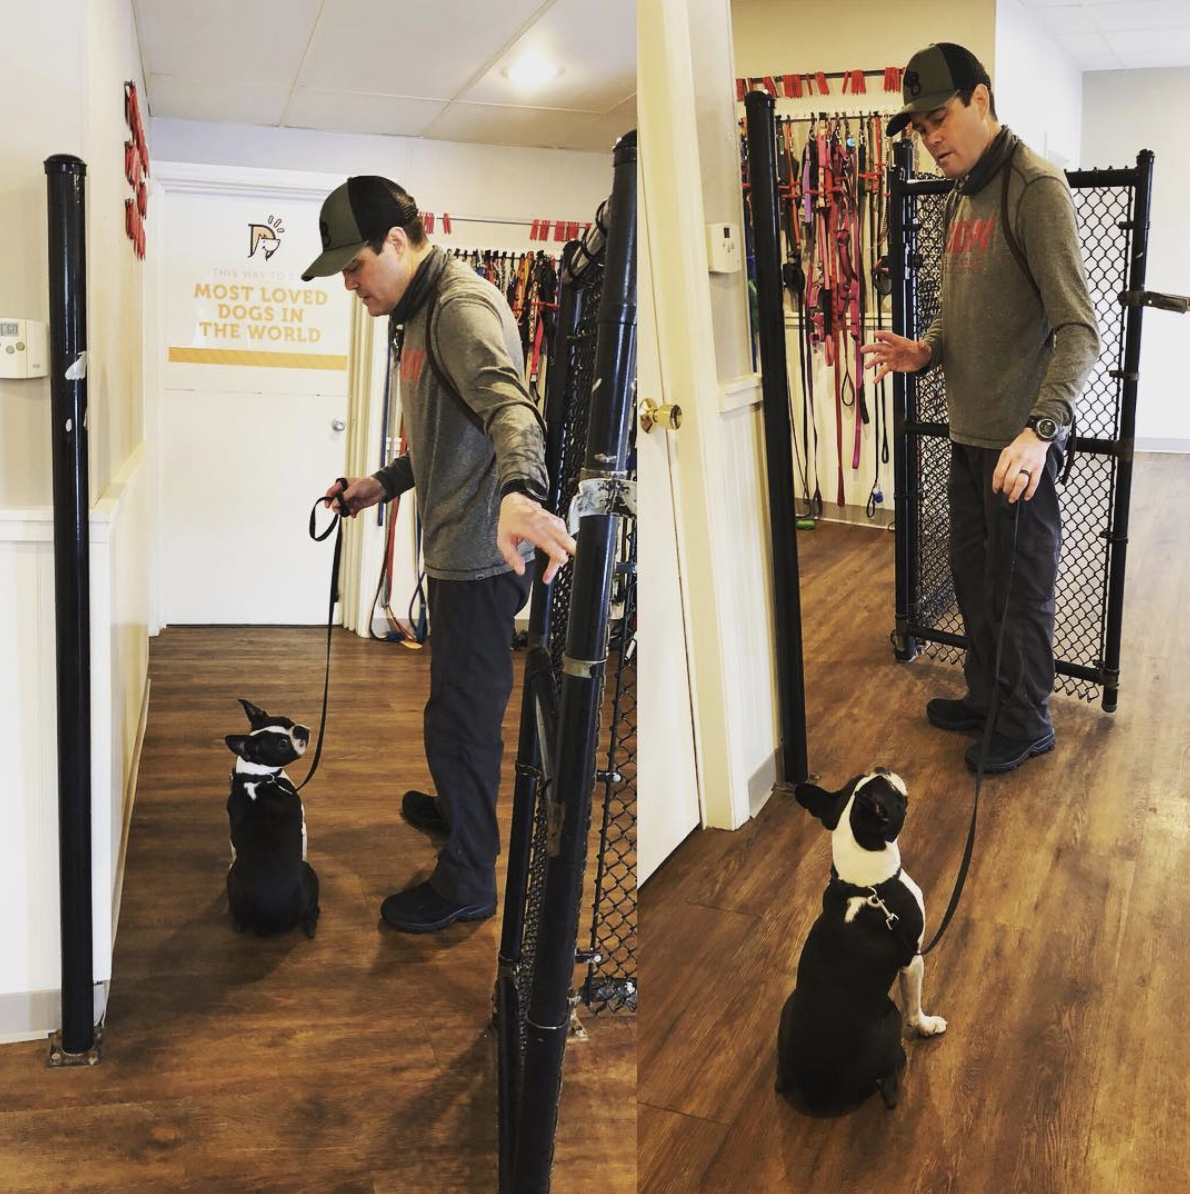 Training - Training is available upon request for our daycare quests. Some parents find that in addition to the benefits dog daycare provides, they have specific training objectives as well.Training can be conveniently provided during daycare.$30 per 30 minute training session